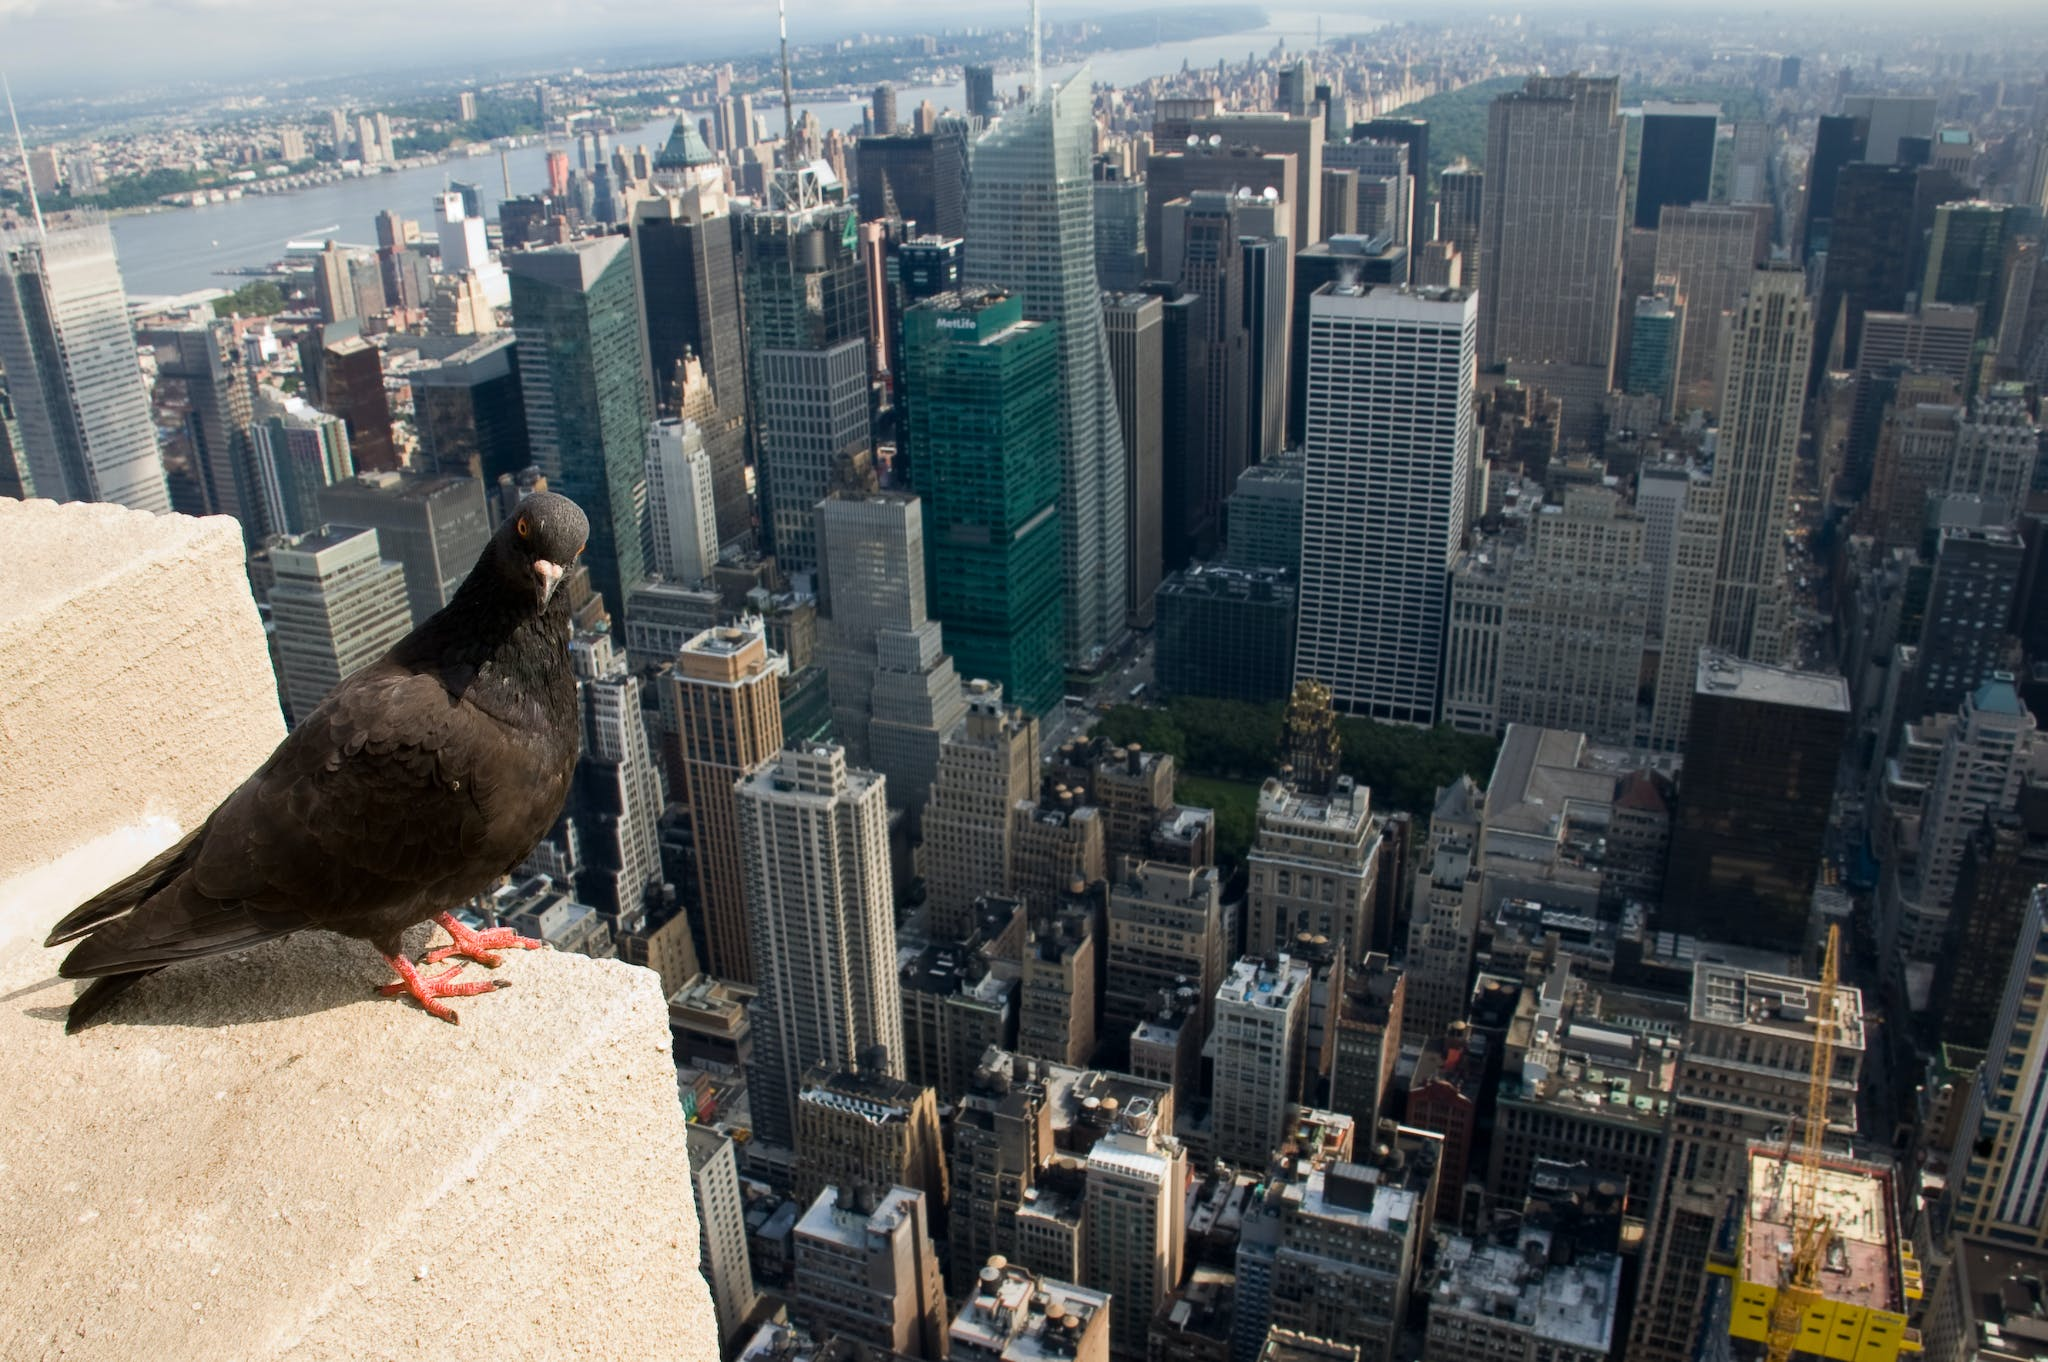 A pigeon overlooks the skyscrapers of New York City